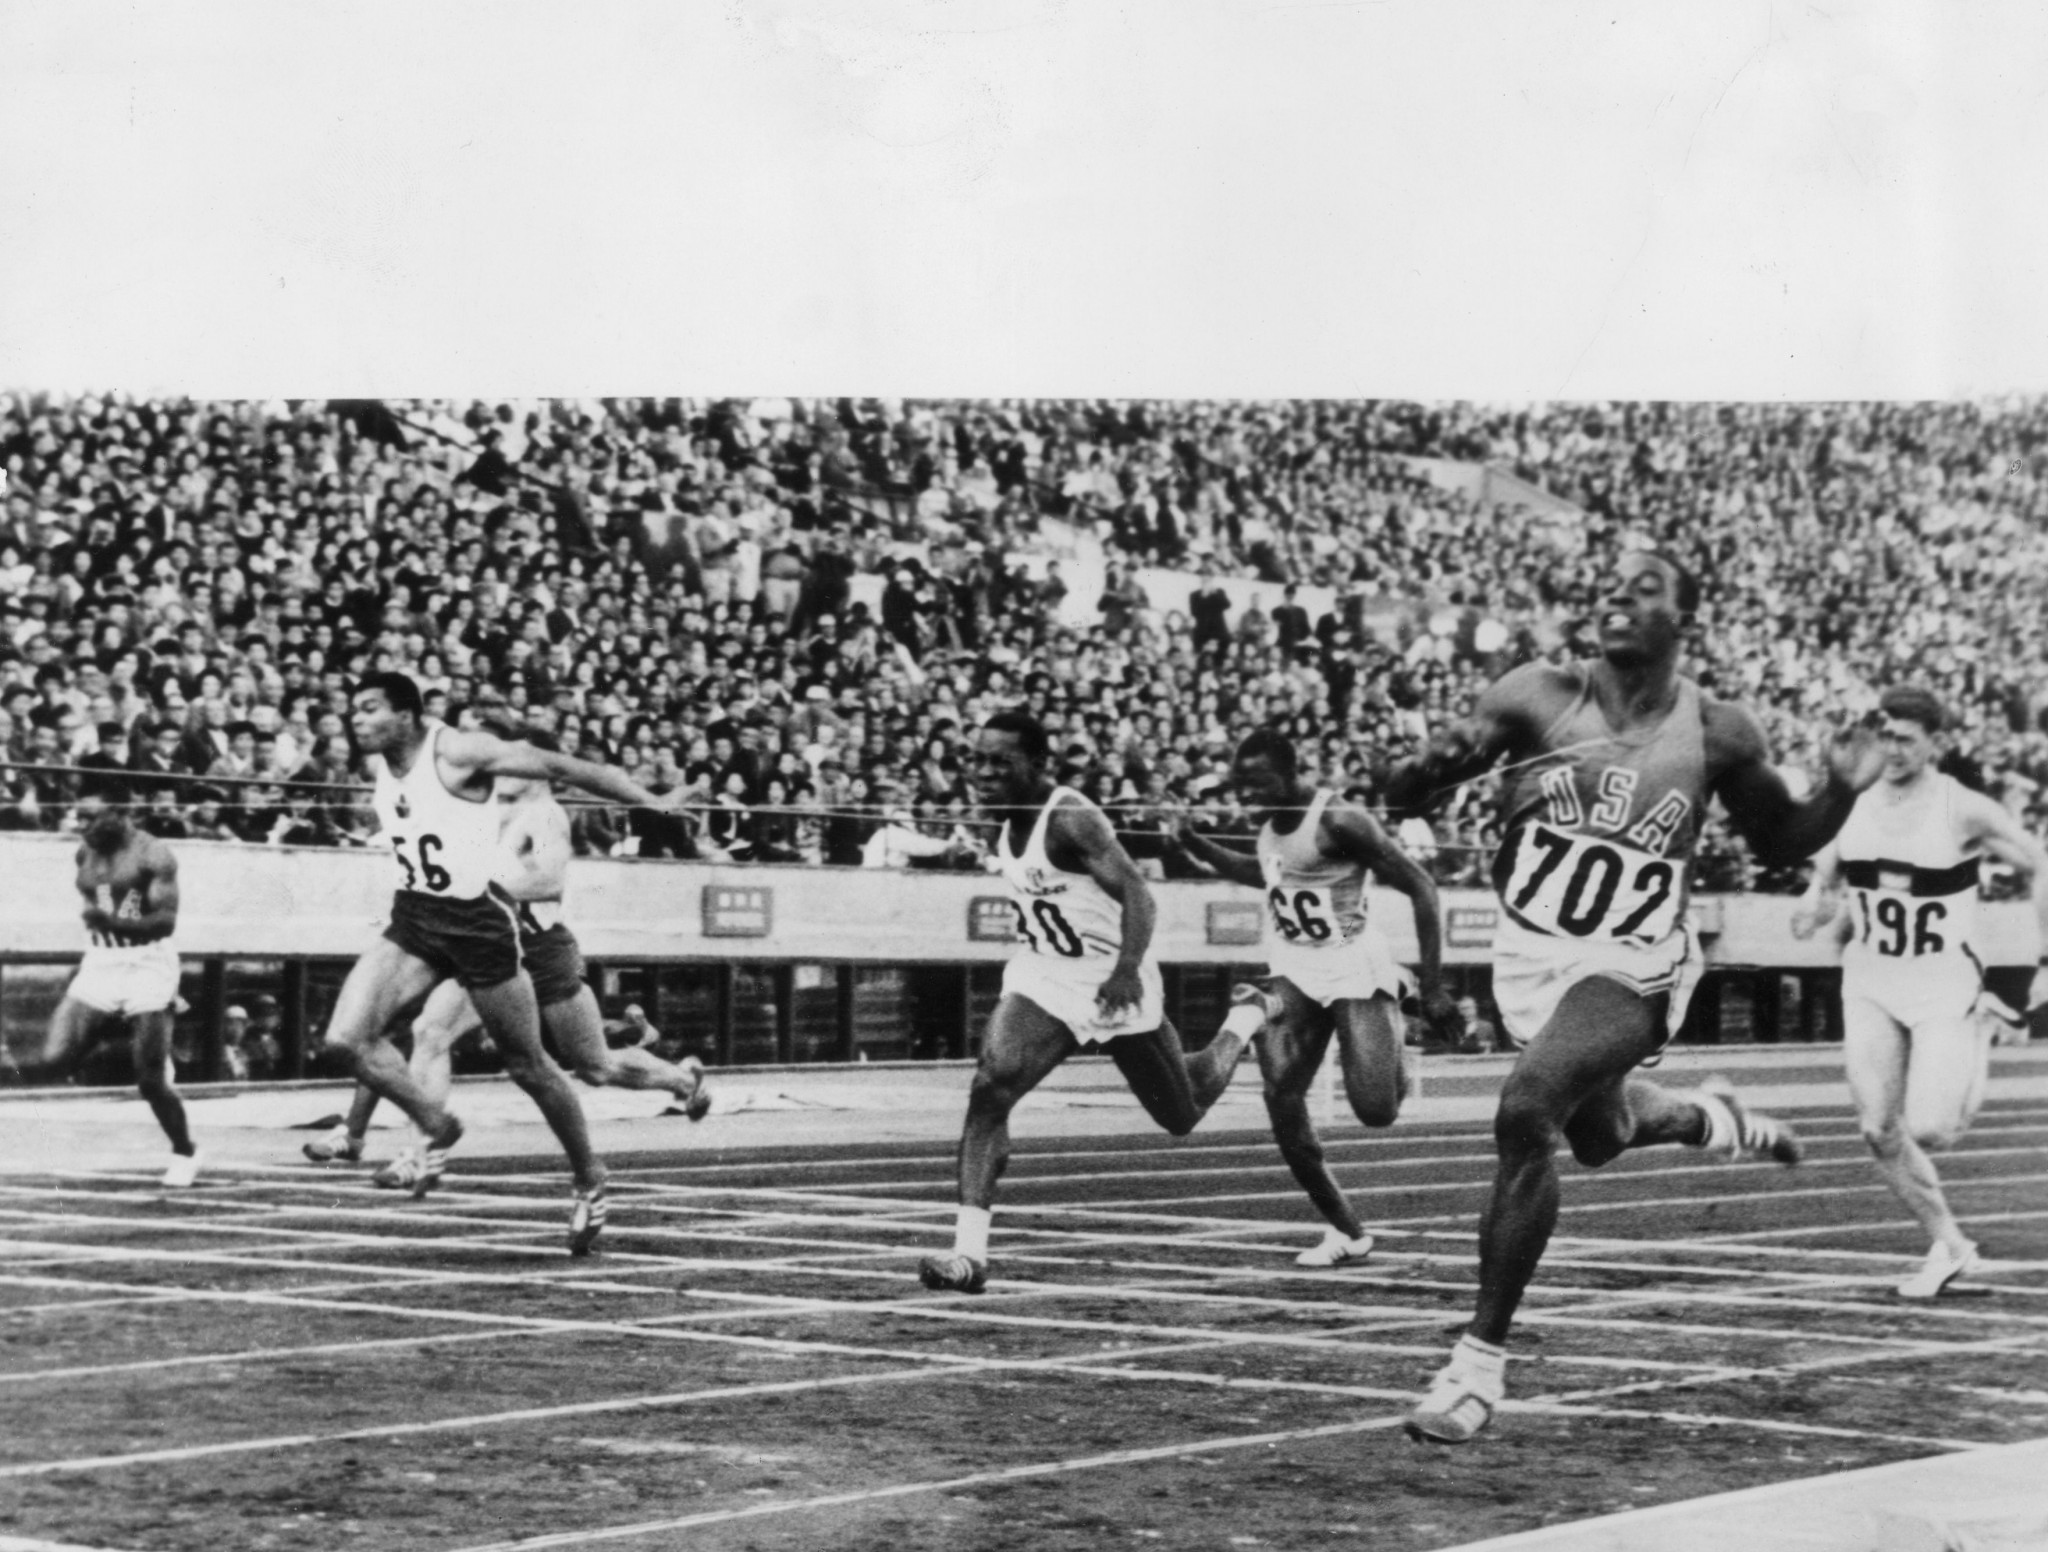 The Baton passed a statue in honour of Canadian sprinter Harry Jerome, seen here at the Tokyo Olympics, numbered 56, finishing third behind Robert Hayes, of the USA, and Enrique Figuerola Camue, of Cuba ©Getty Images